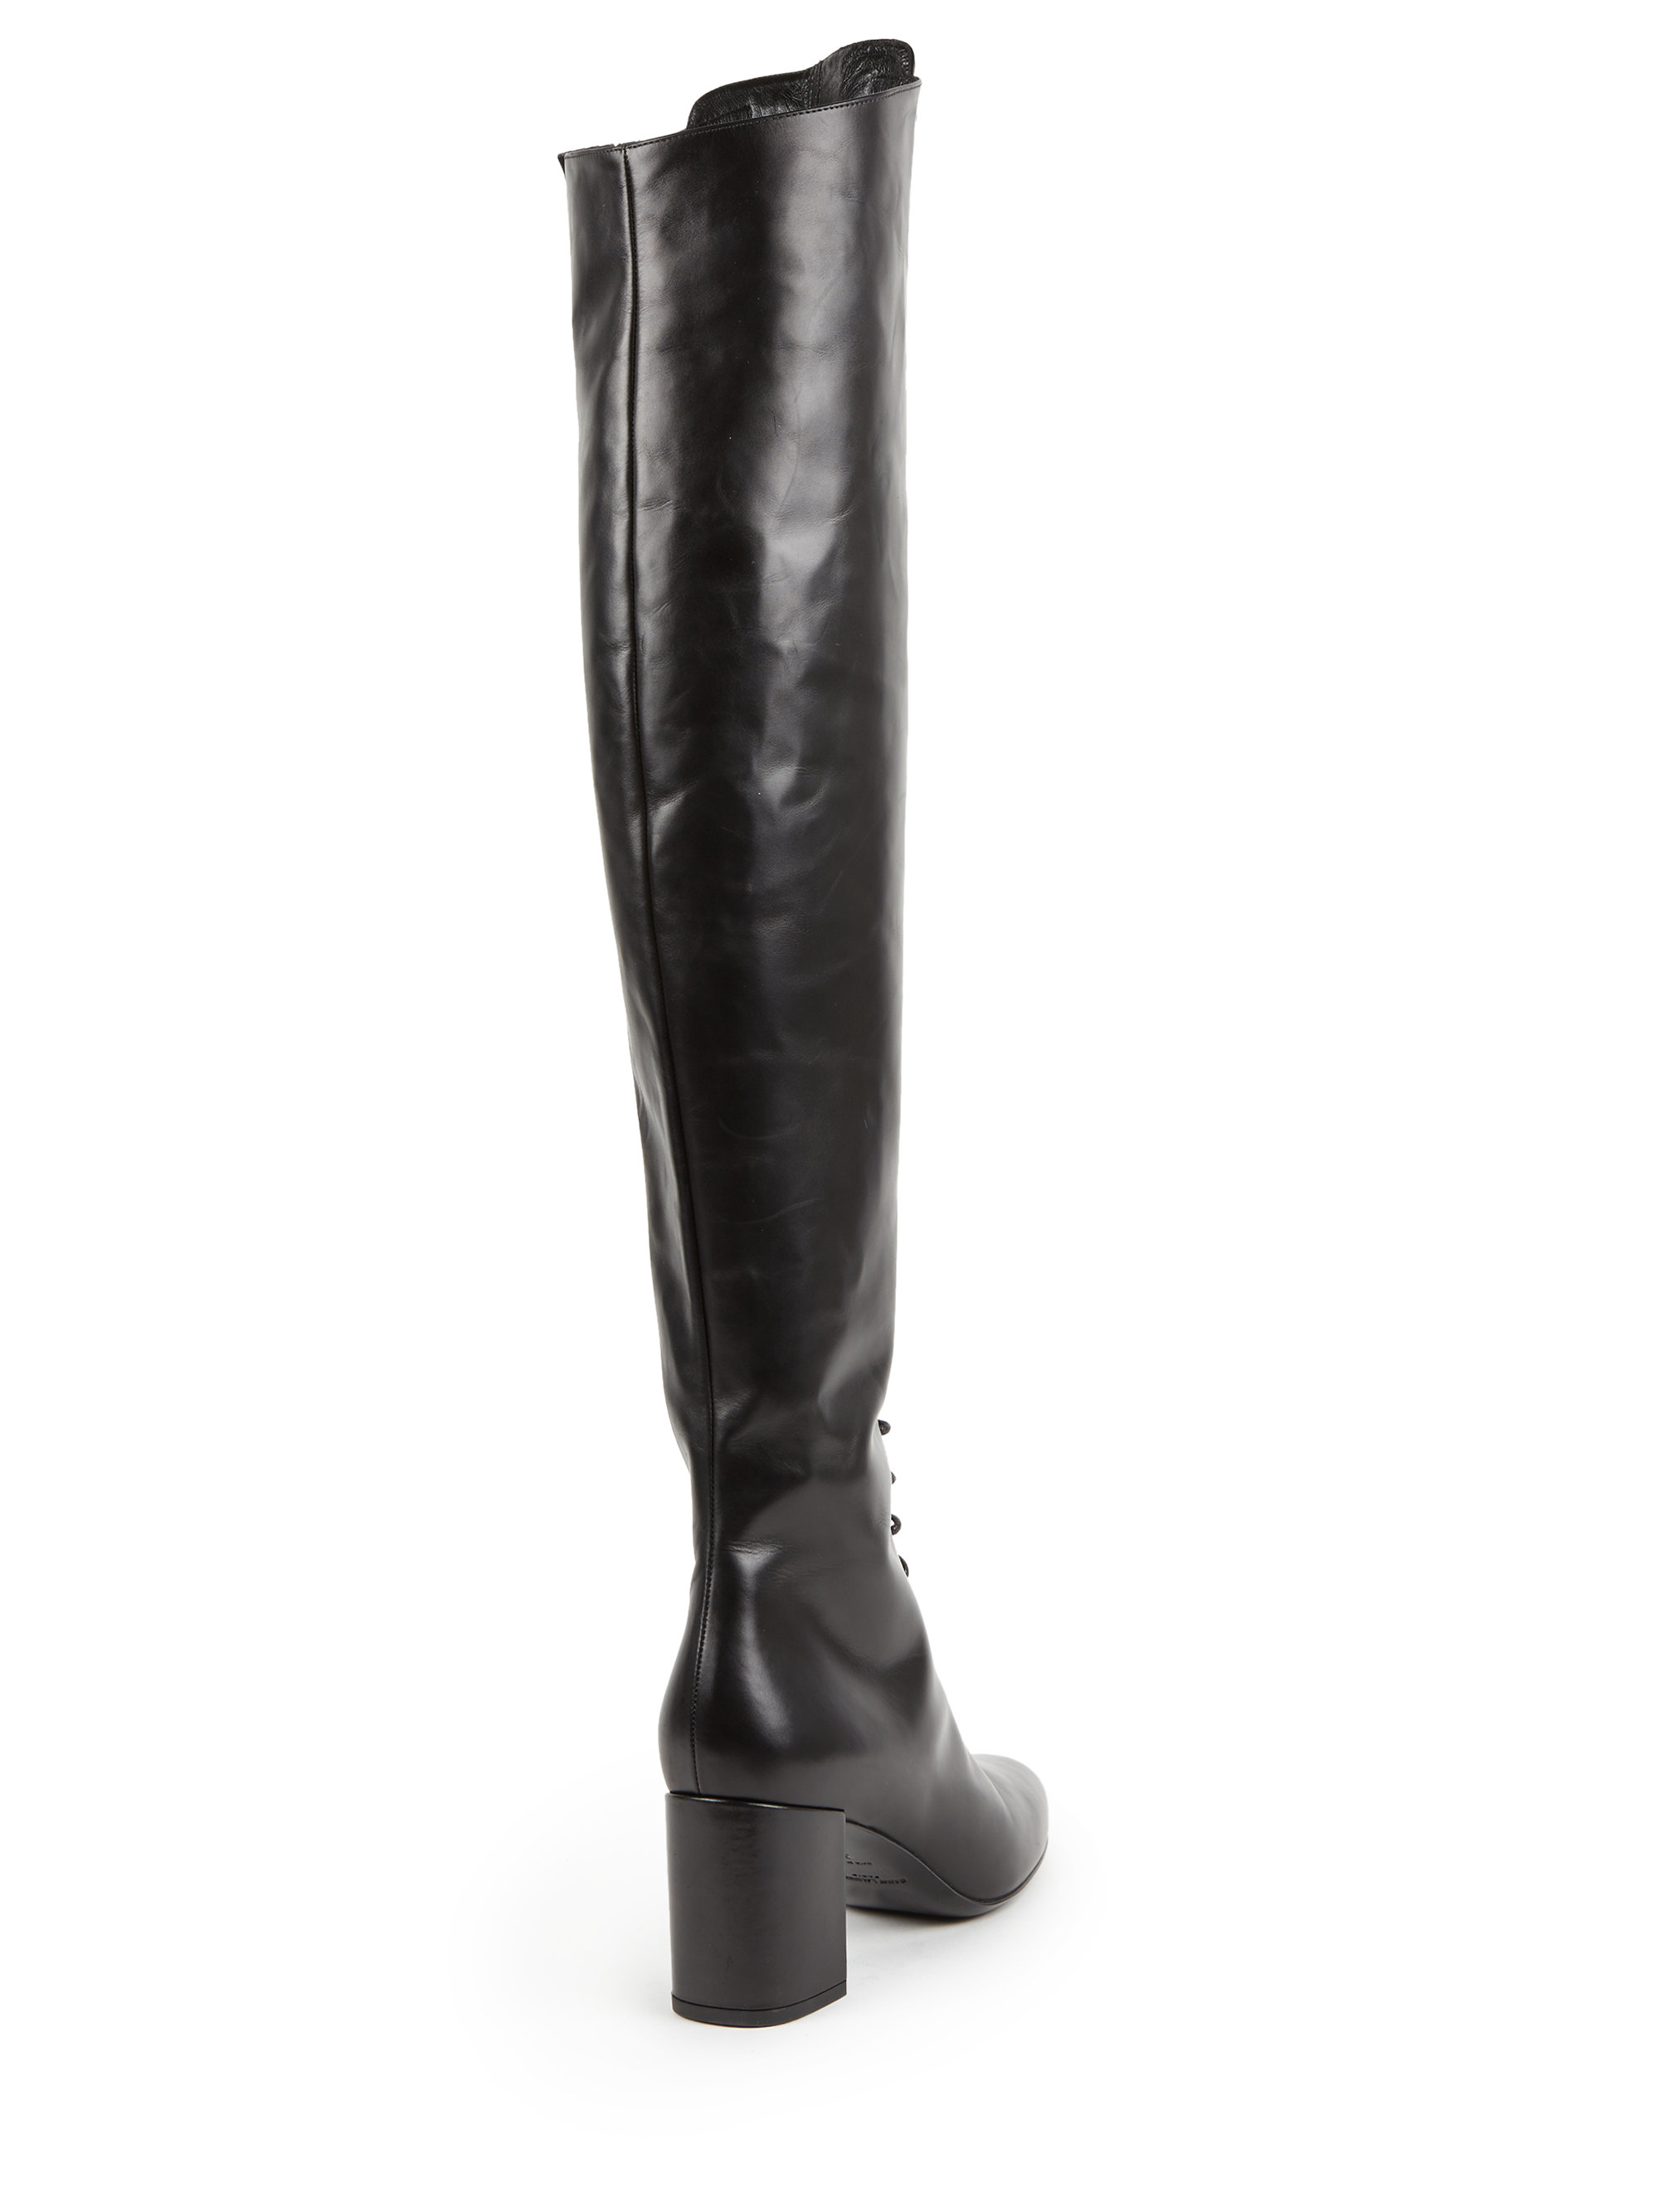 Saint LaurentOver-The-Knee Leather Boots